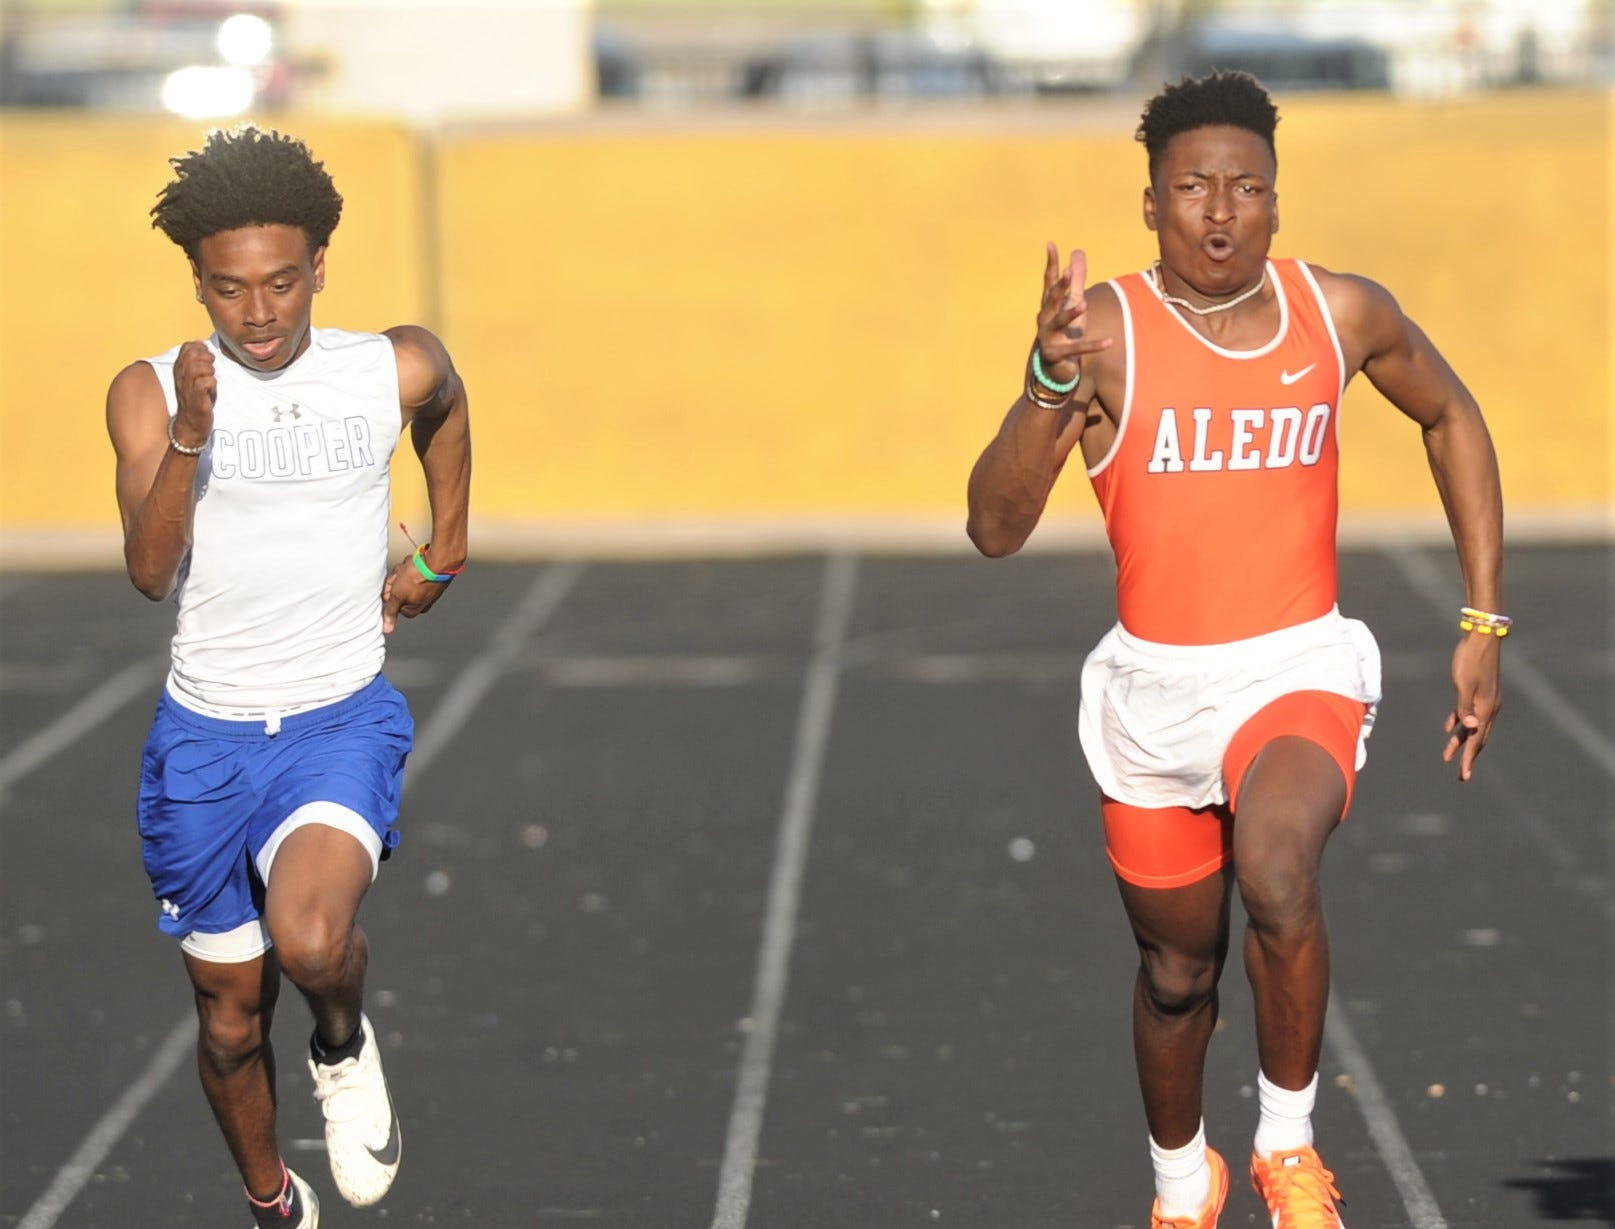 Cooper's Keitron Boyd, left, races Aledo's Monterren Parks to the finish line in the 200 meters final at the District 4-5A track and field meet Thursday, April 3, 2019, at Aledo's Bearcat Stadium. Parks won the race in 22.54 seconds, while Boyd was second (22.63).